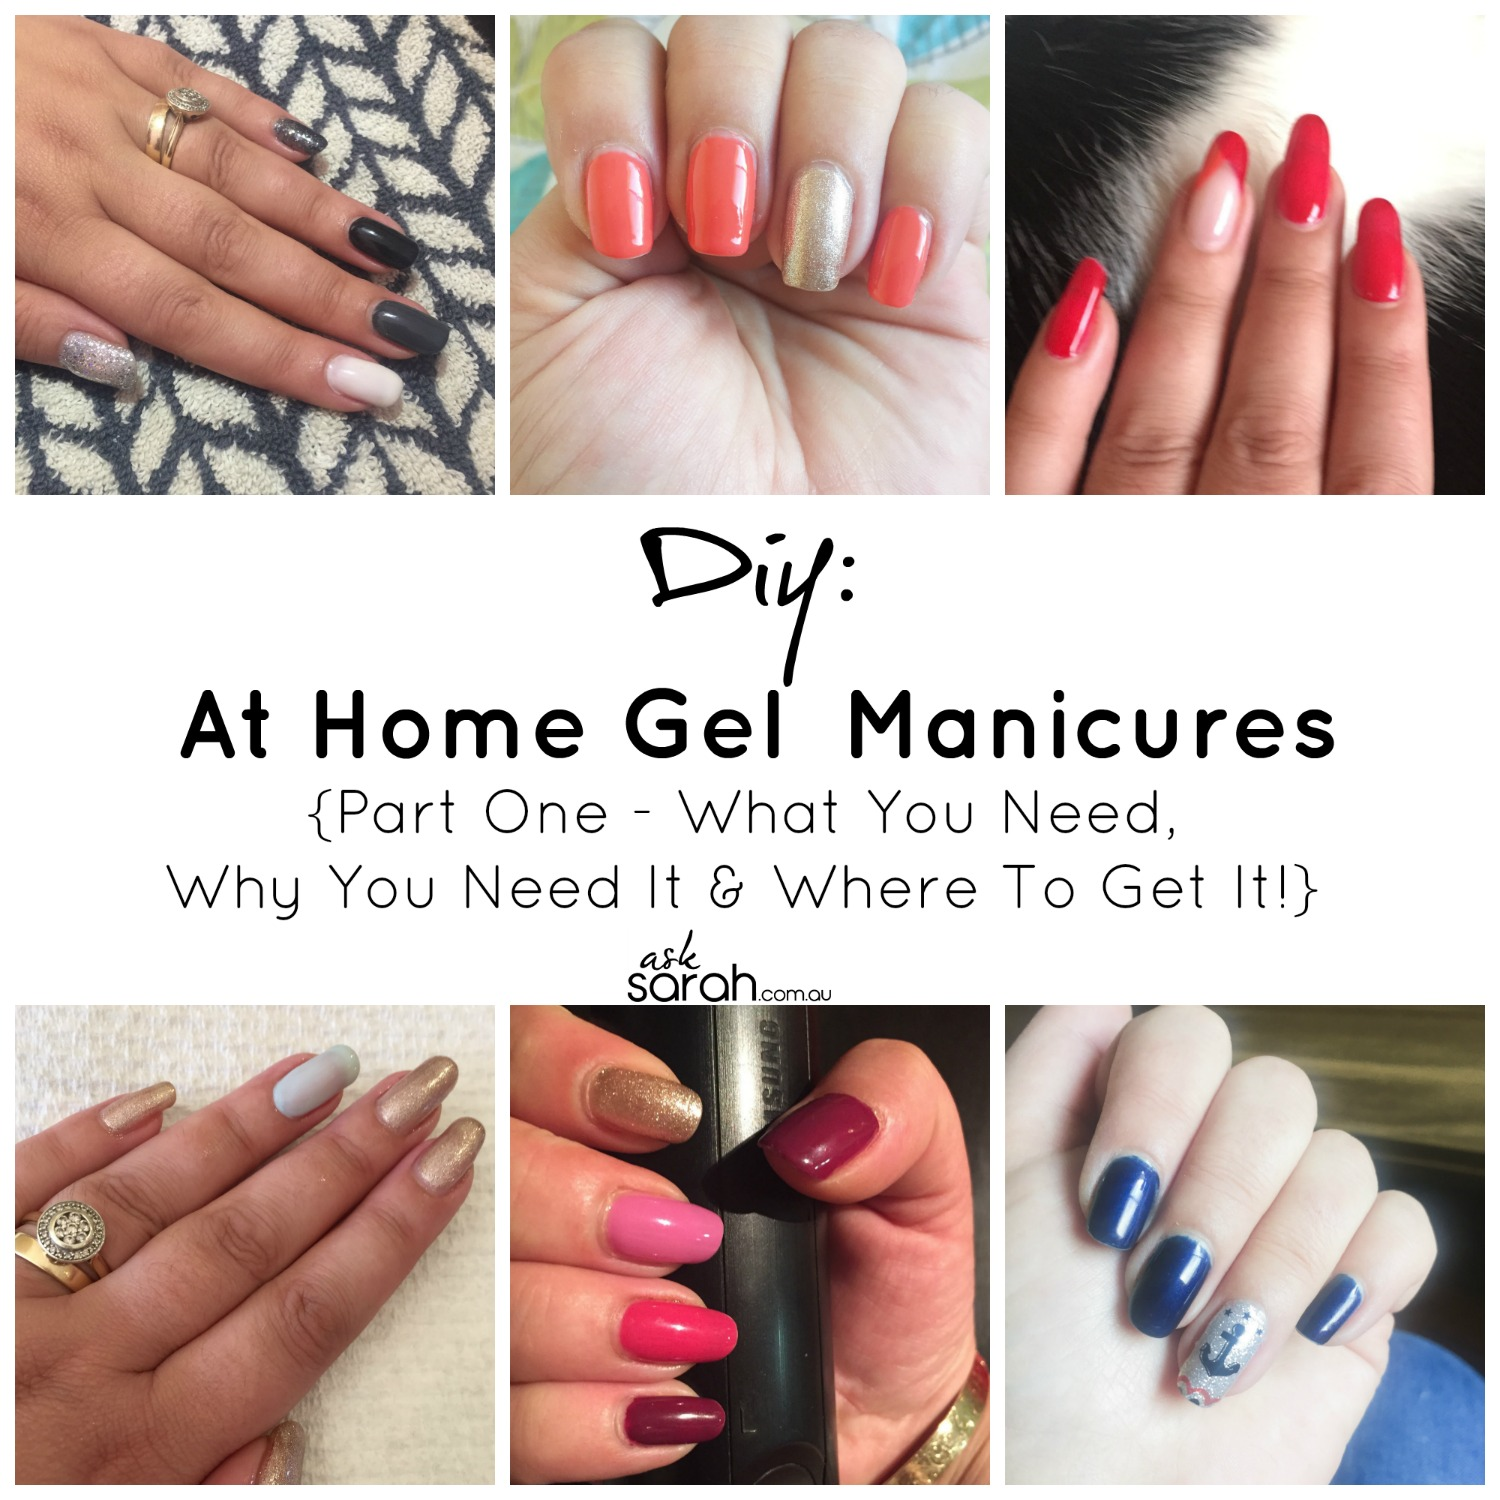 DIY: At Home Gel Manicures {Part One - What You Need, Why You Need It & Where To Get It!}